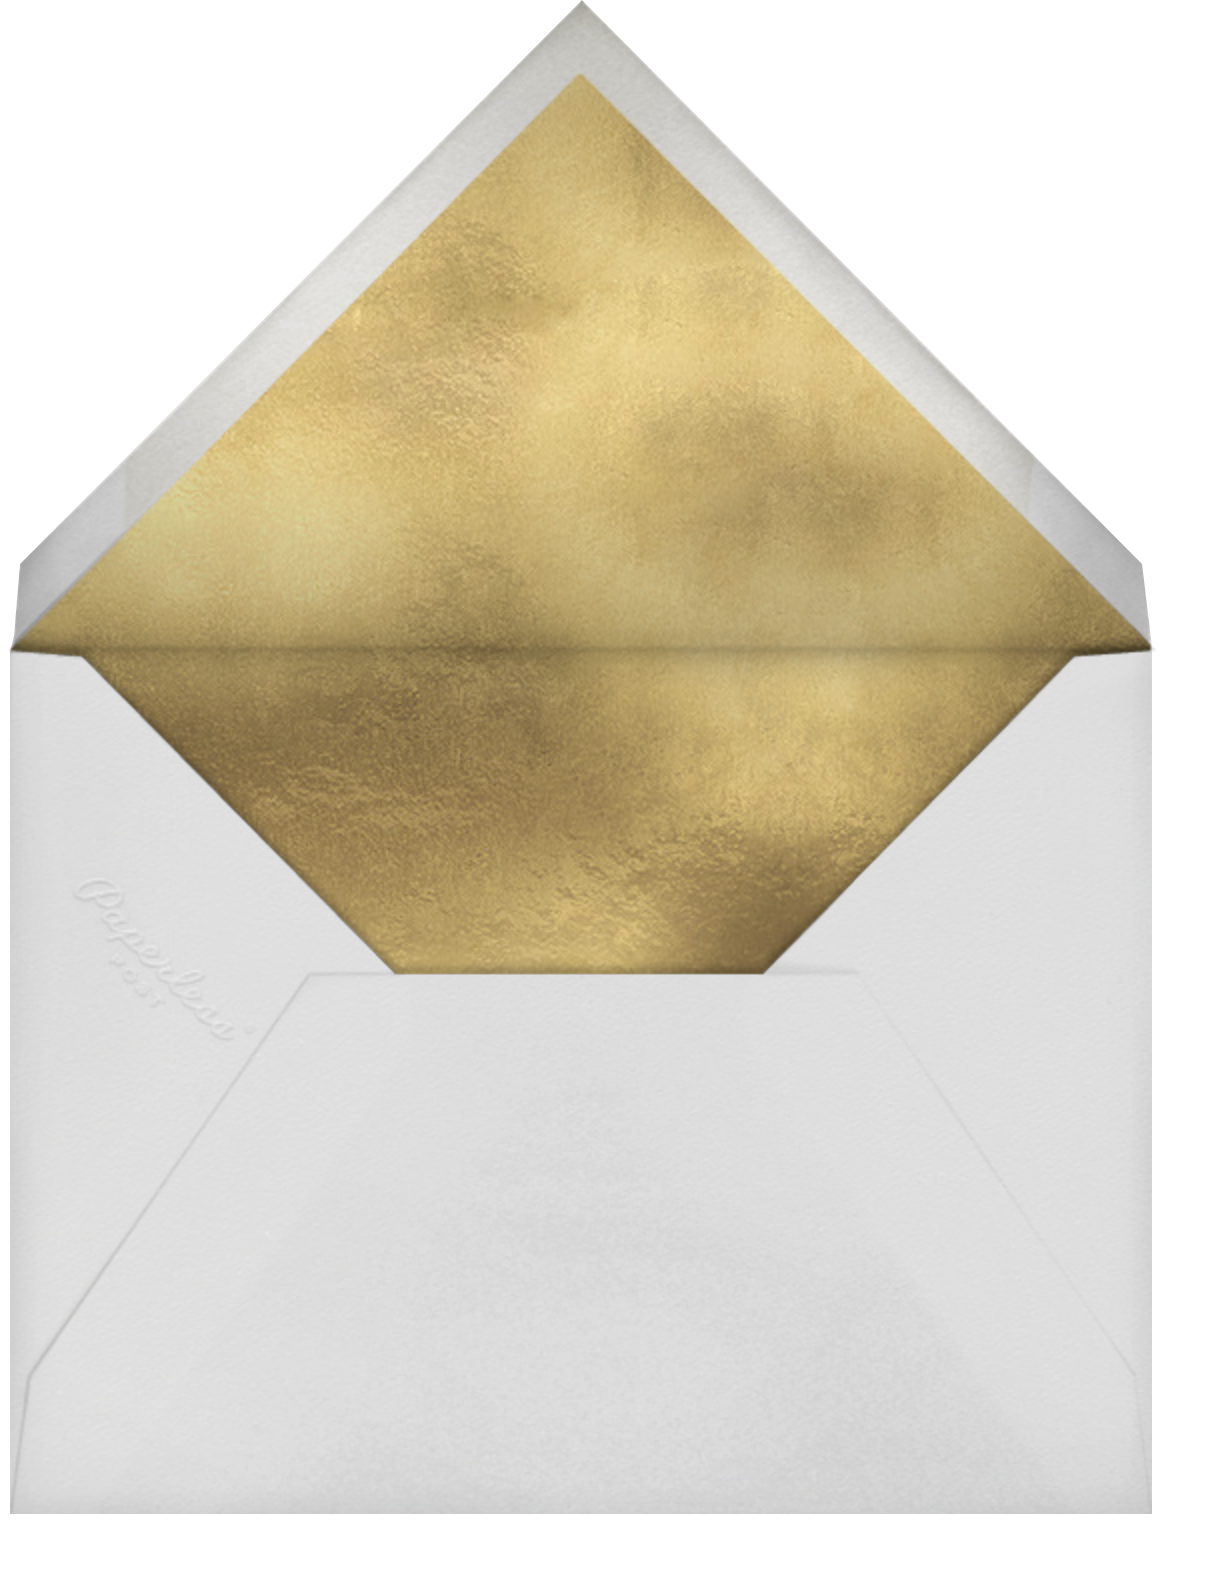 Wild About You Leopard - Rifle Paper Co. - Envelope